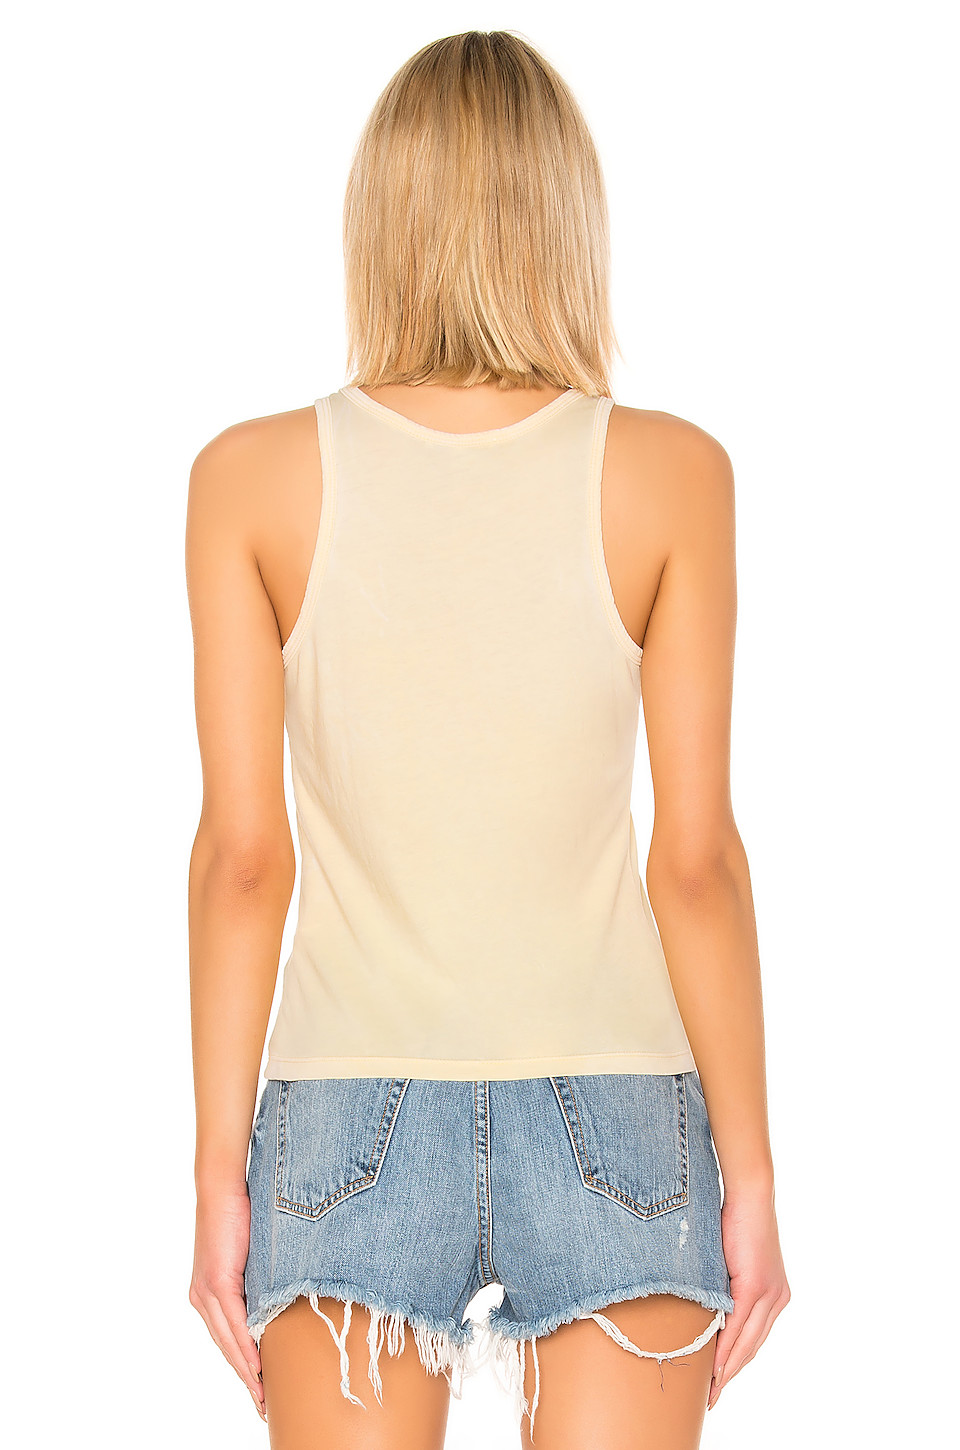 COTTON CITIZEN The Standard Tank